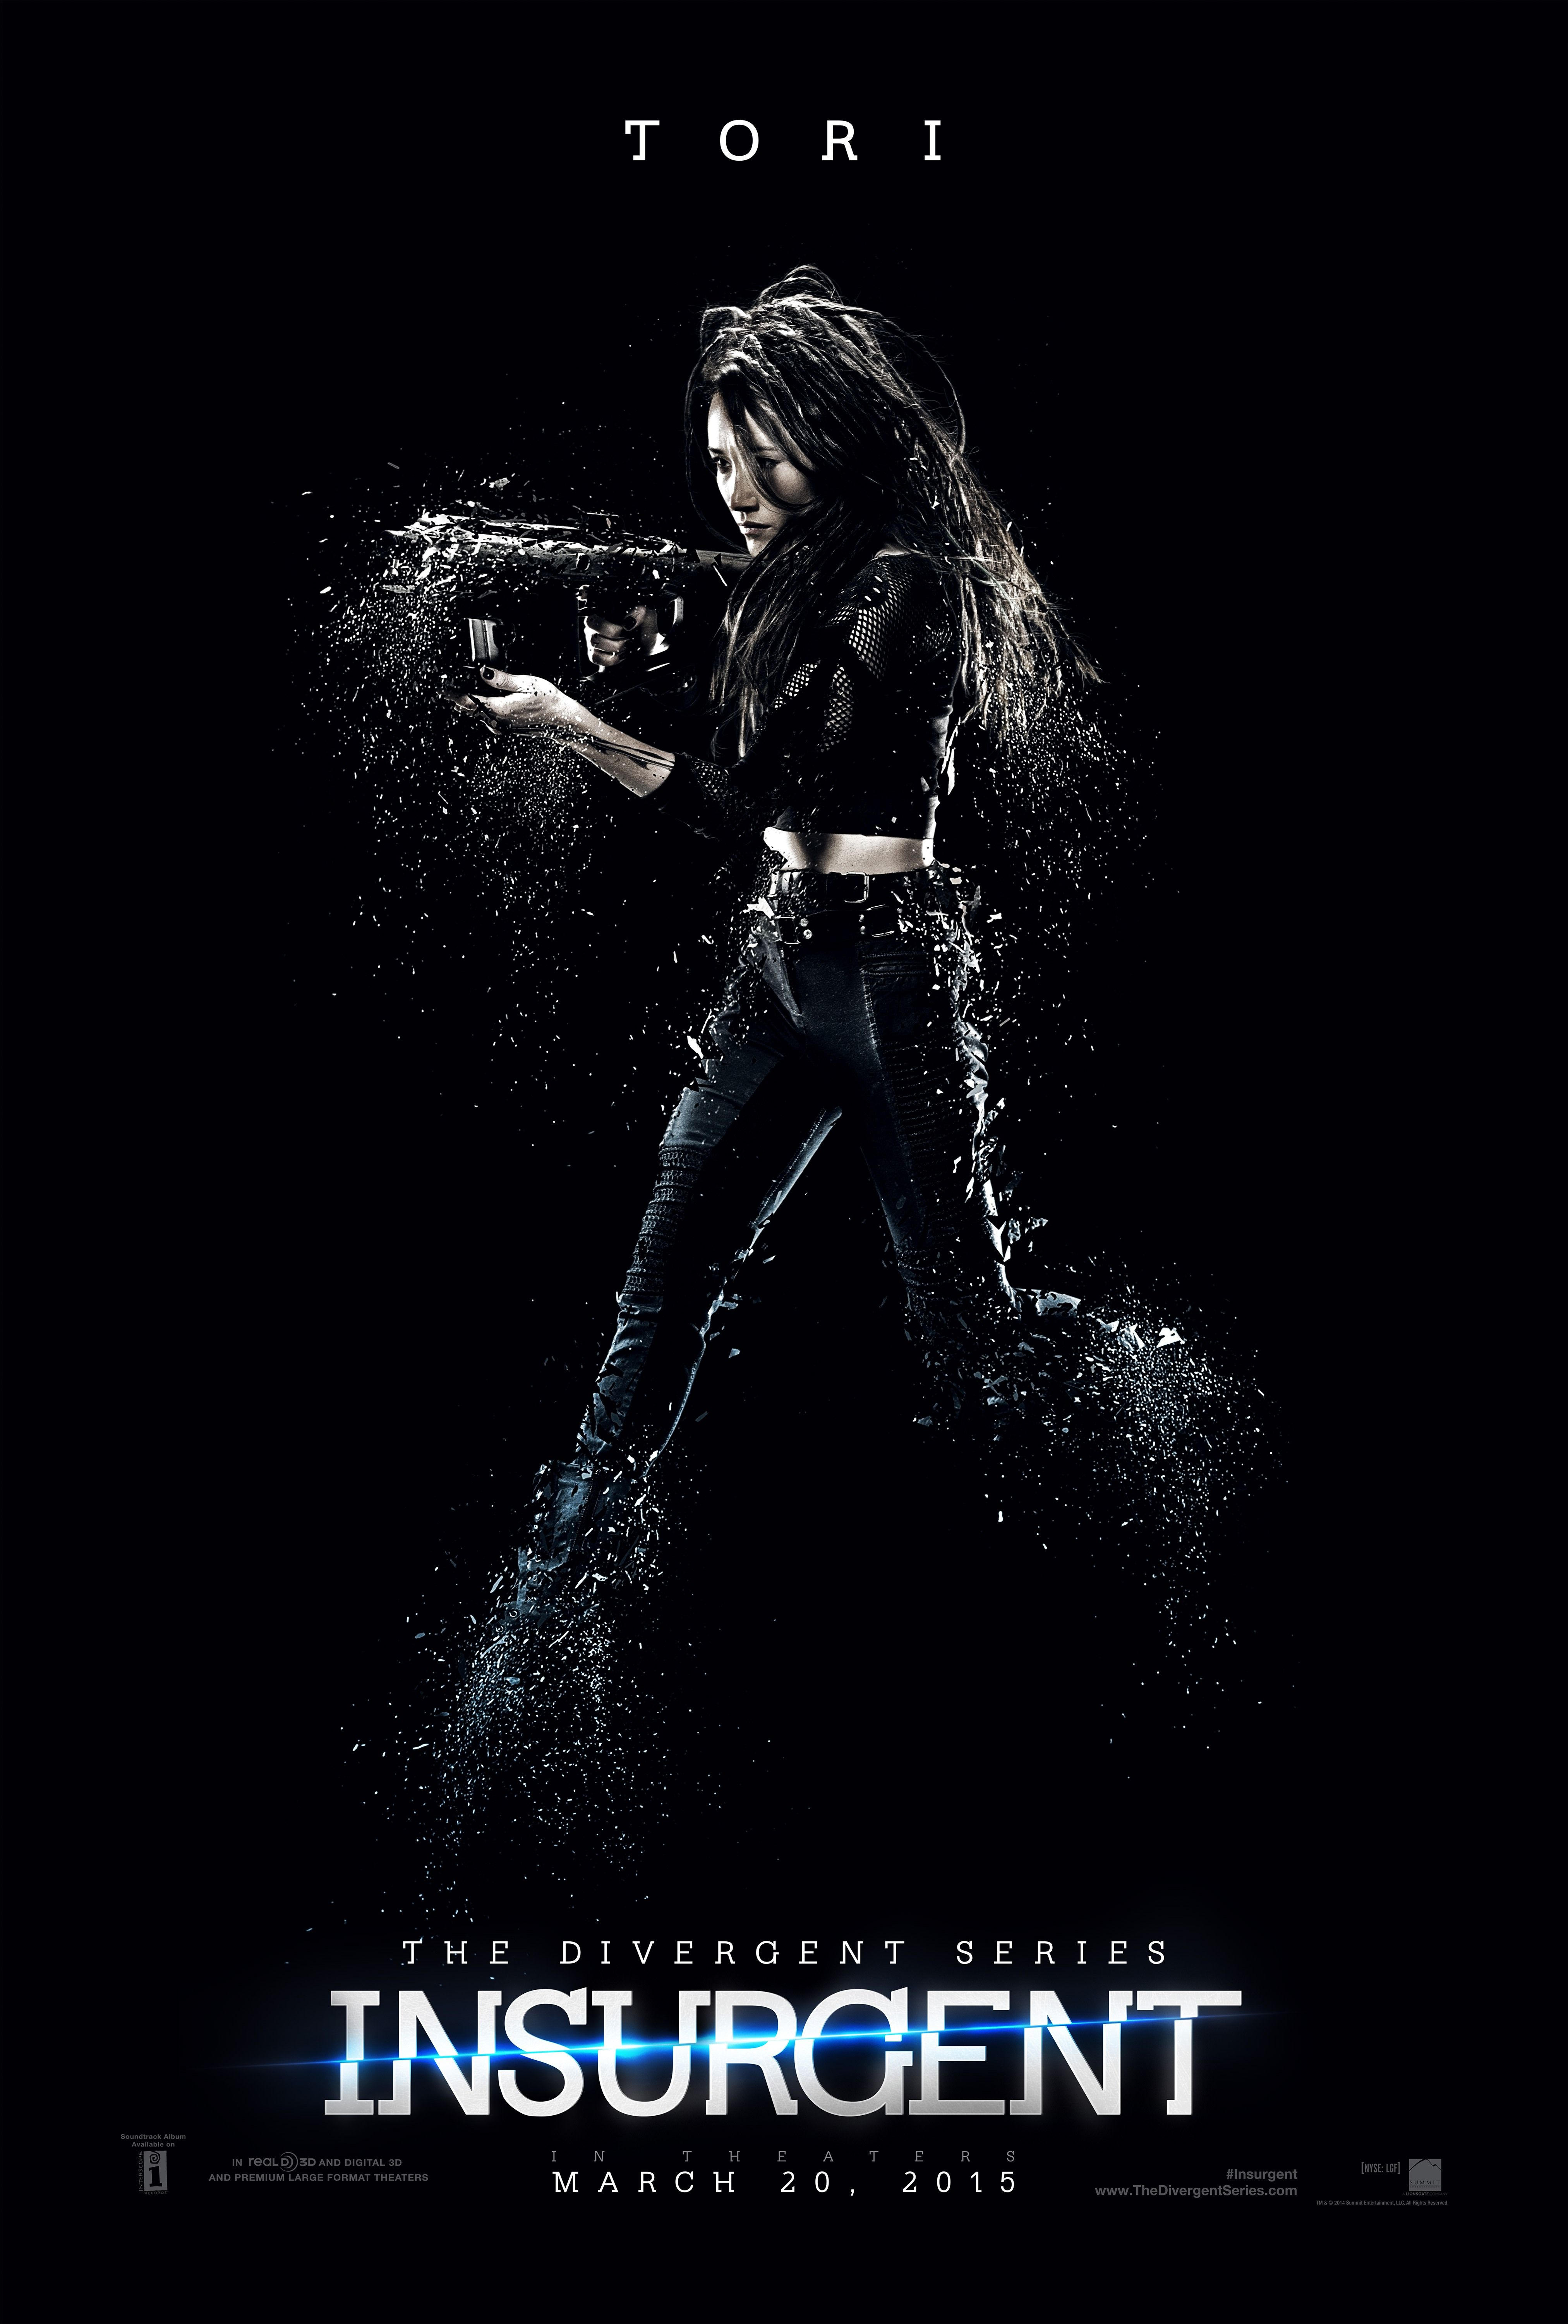 The Divergent Series Insurgent Character Posters Revealed Ign Insurgent Movie Insurgent Divergent Series